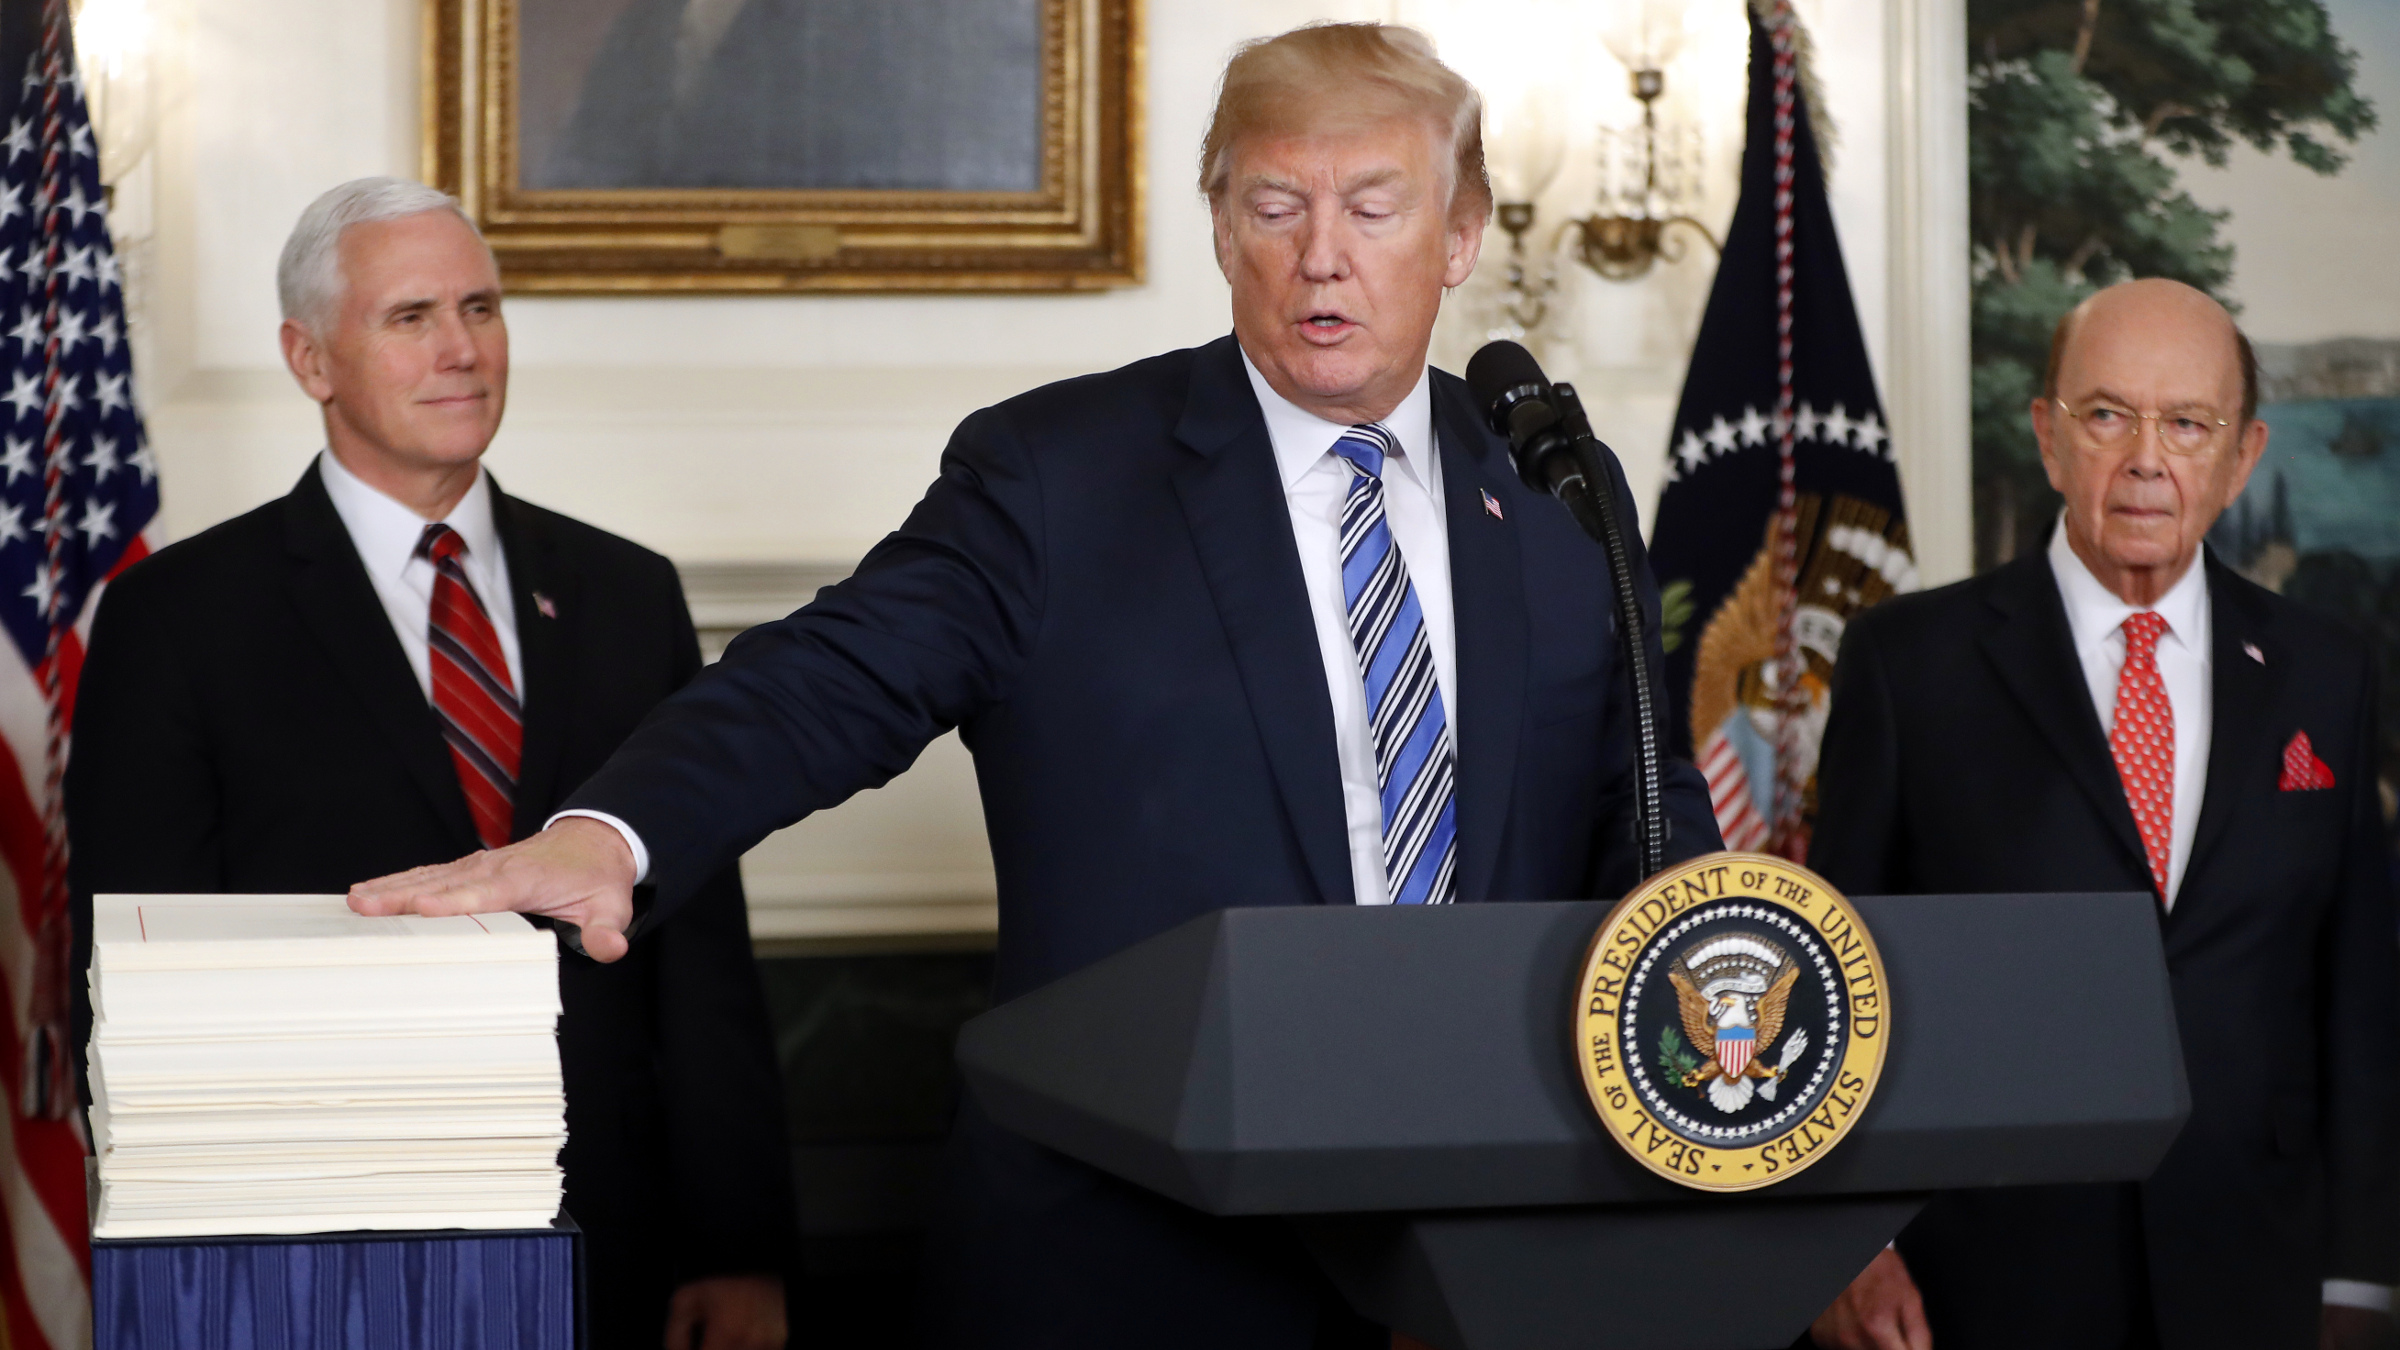 President Donald Trump reaches to touch a copy of the $1.3 trillion spending bill as he speaks in the Diplomatic Room of the White House in Washington, Friday, March 23, 2018. With Trump are Vice President Mike Pence, left, and Commerce Secretary Wilbur Ross.